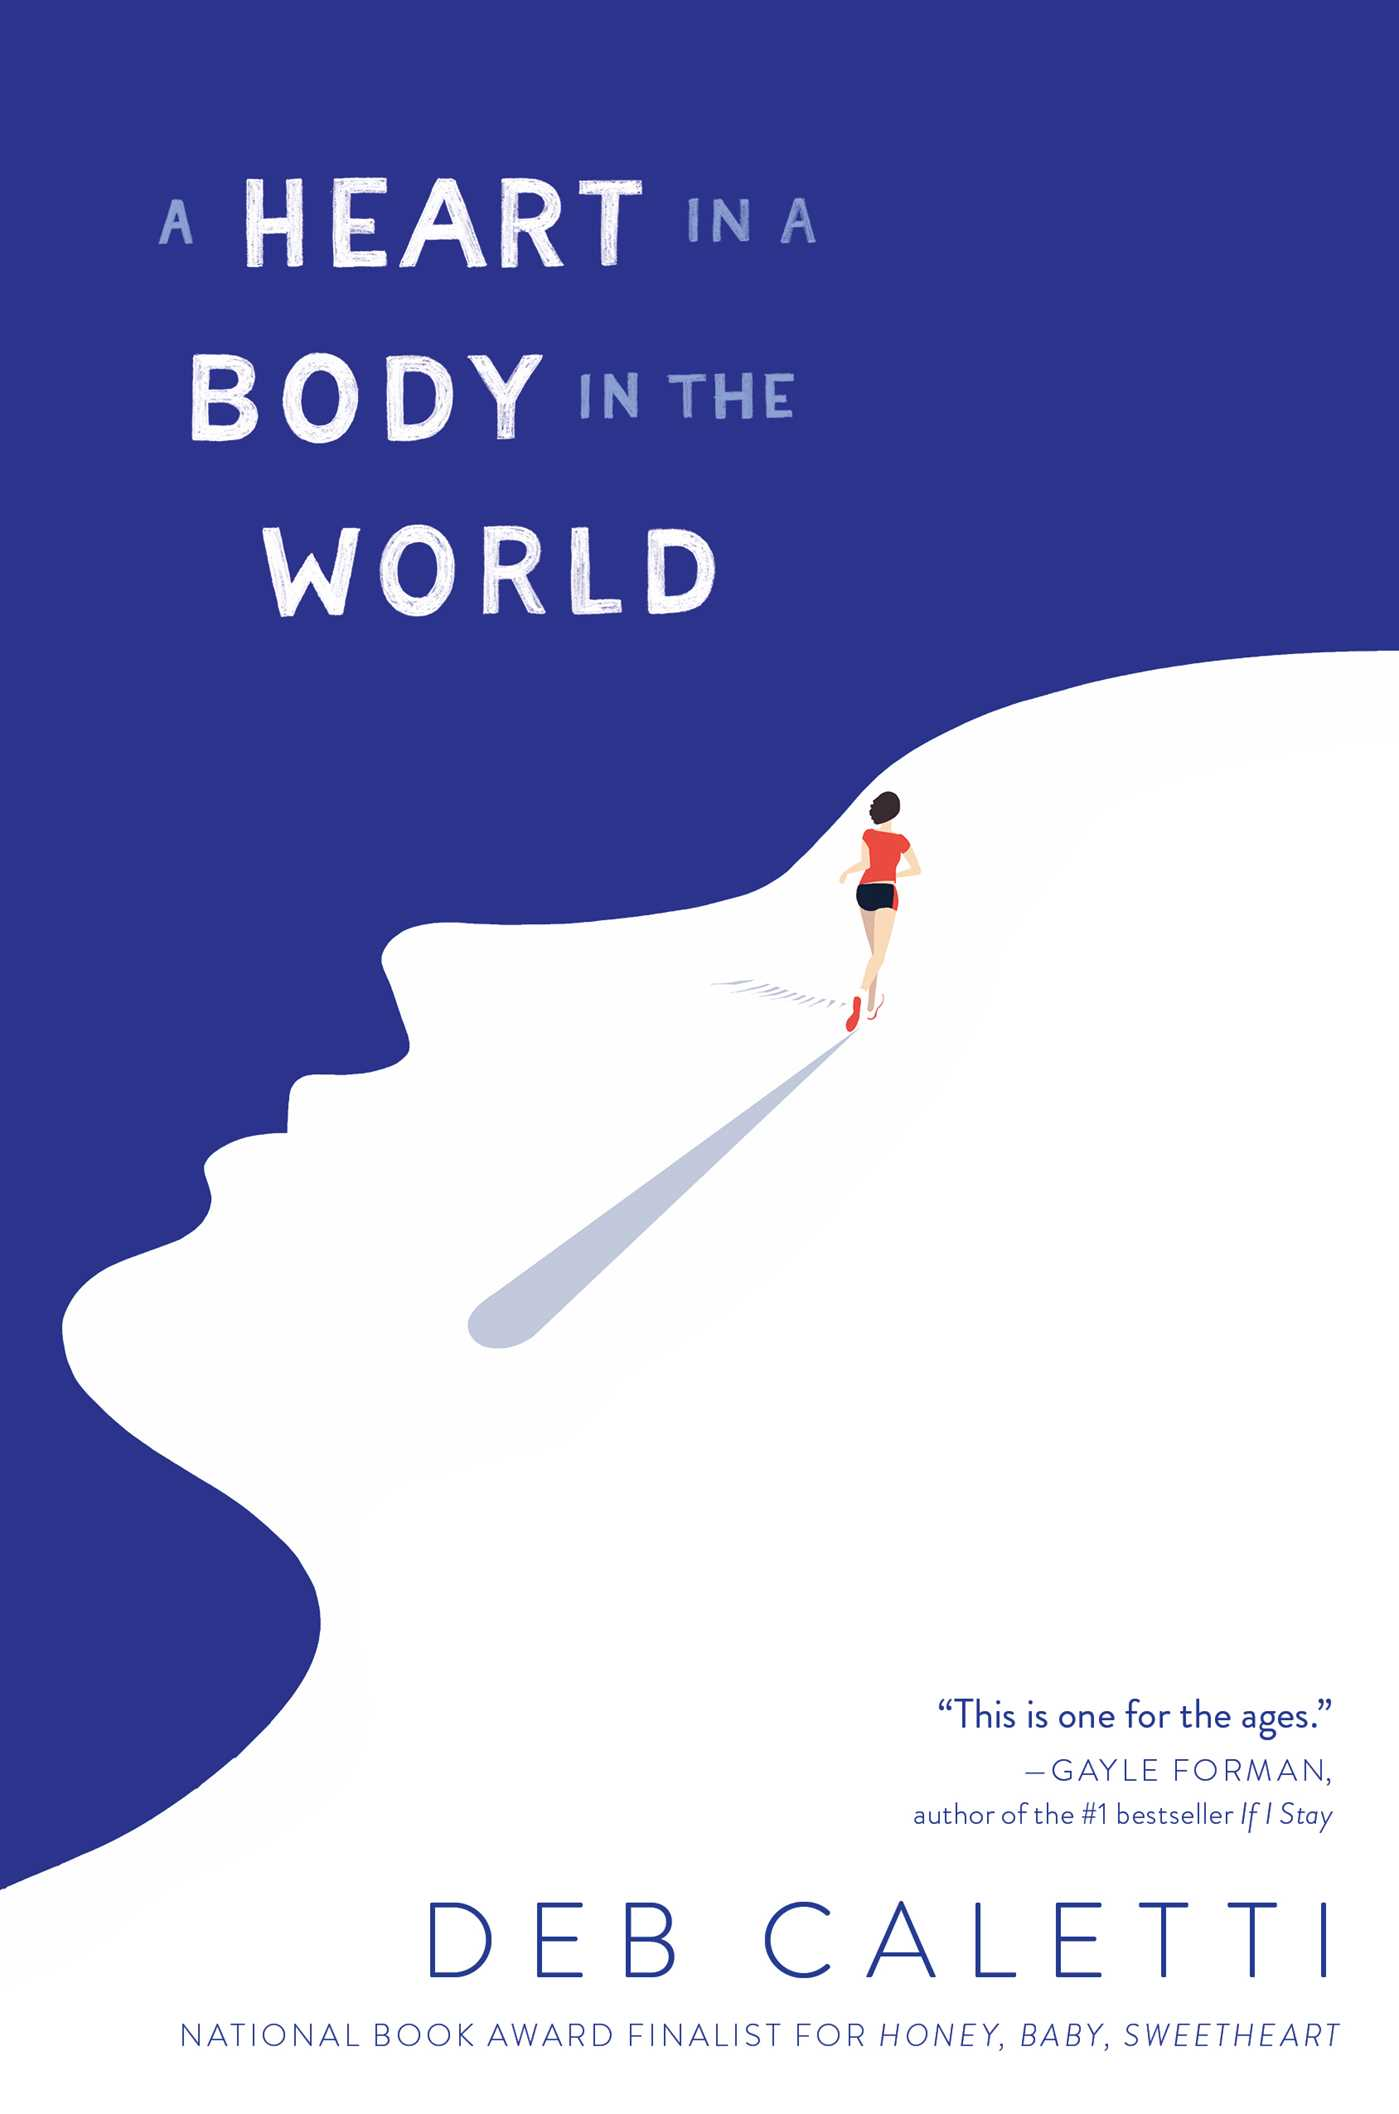 Blog Tour & Giveaway: A Heart in a Body in the World by Deb Caletti